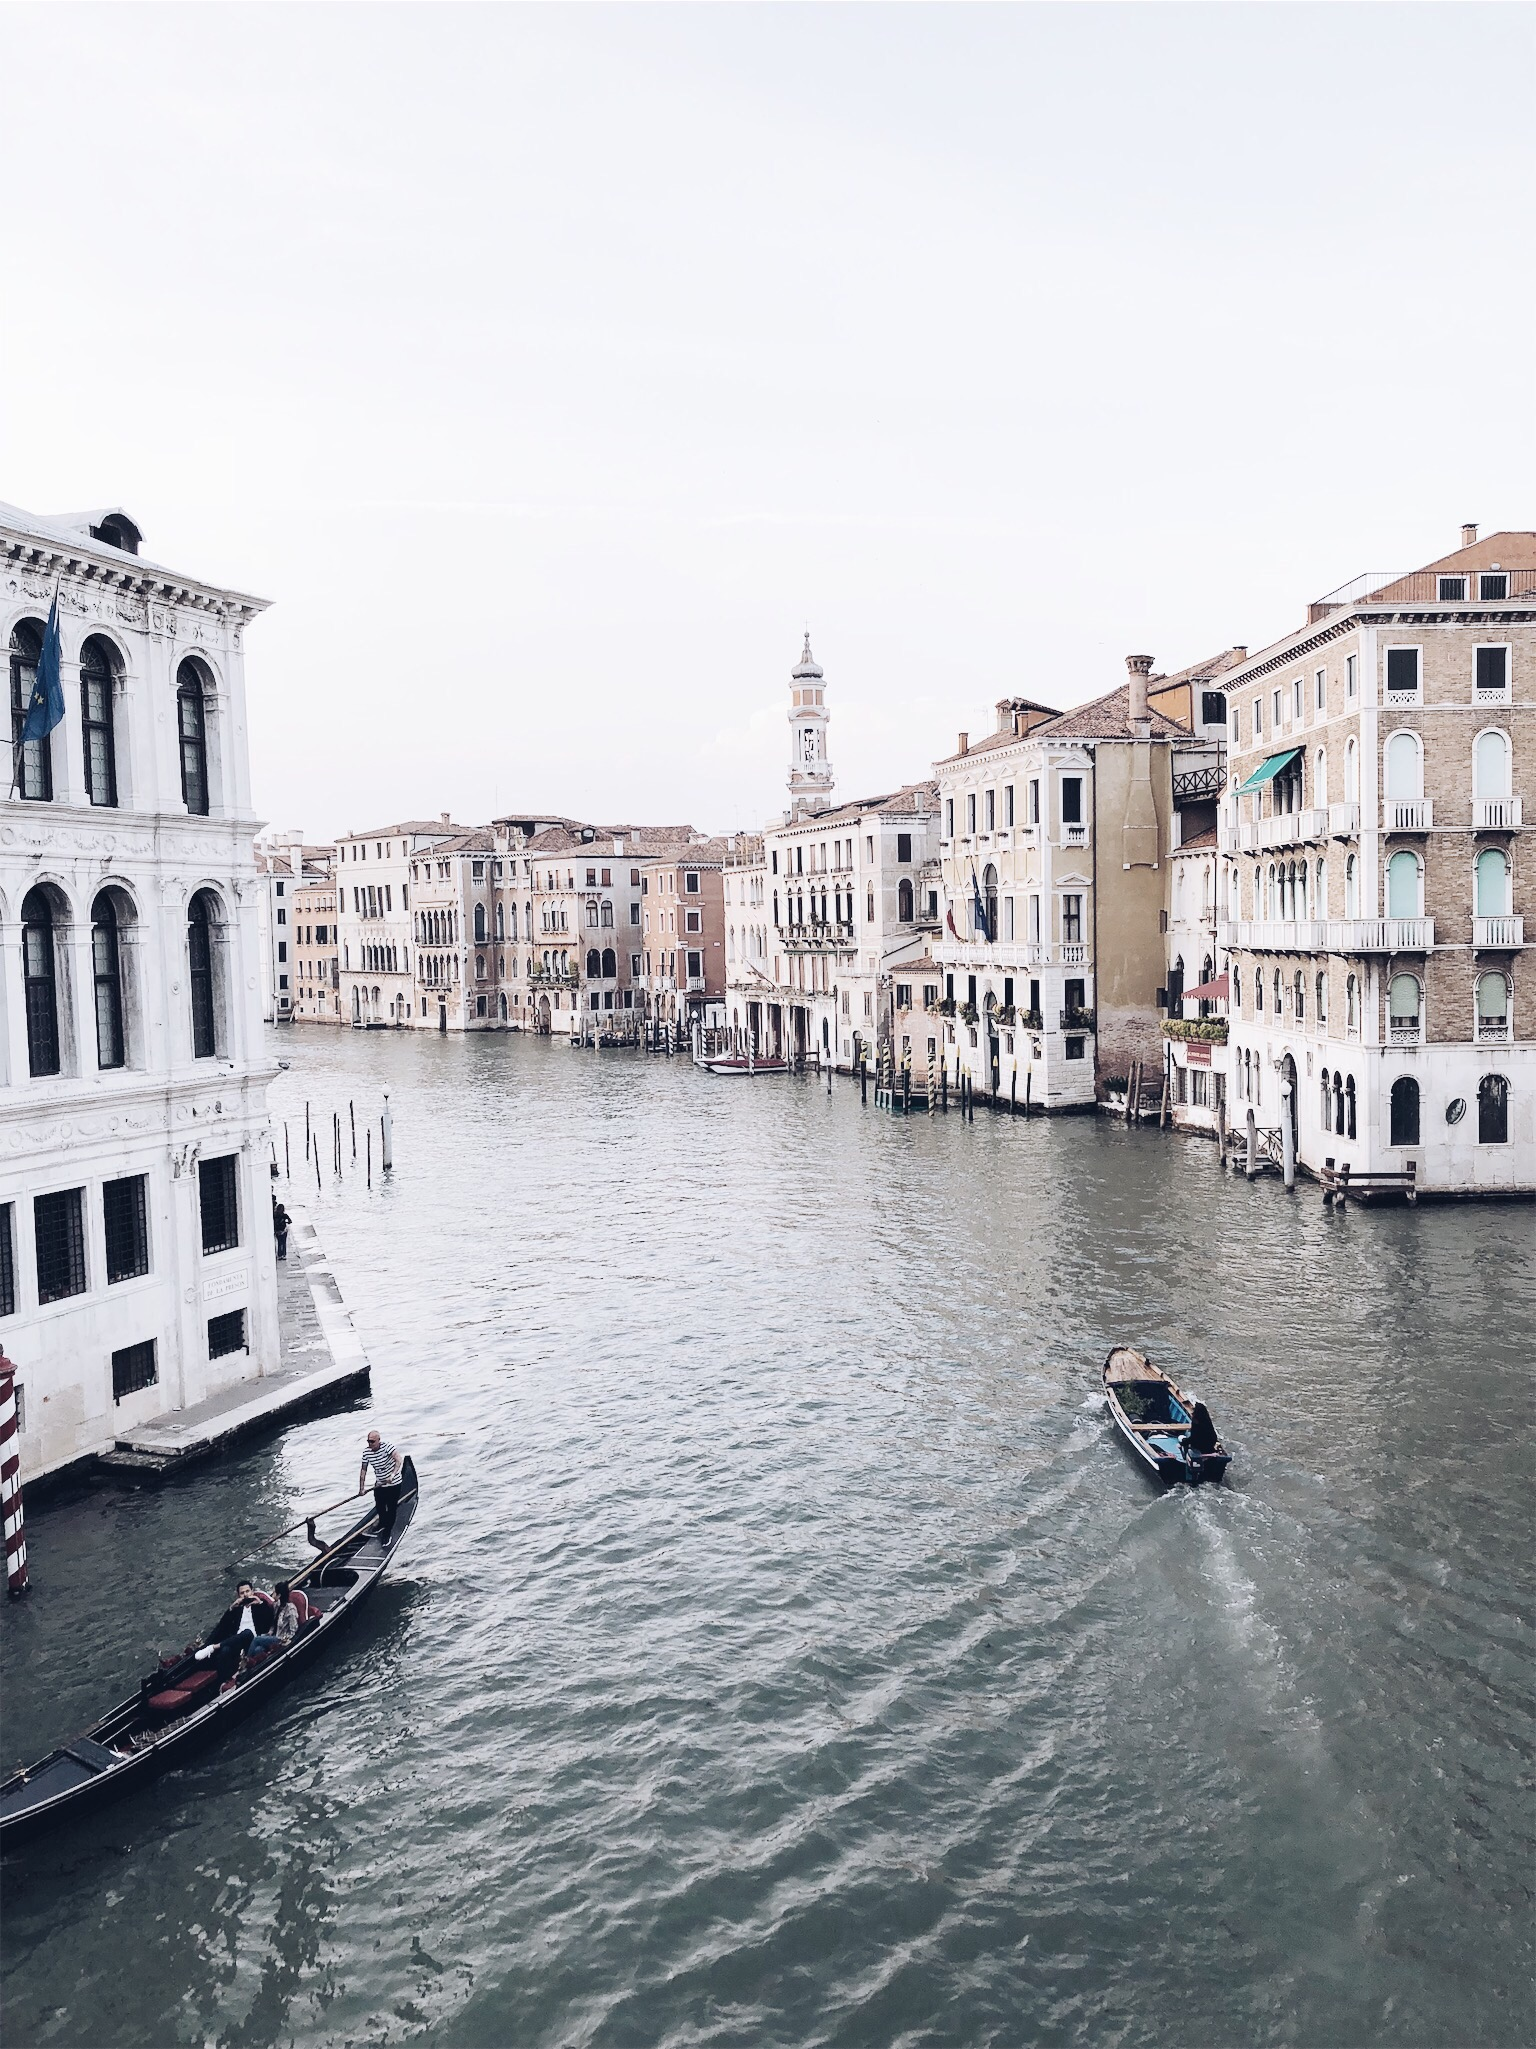 The beautiful view from the Grand Canal in Venice